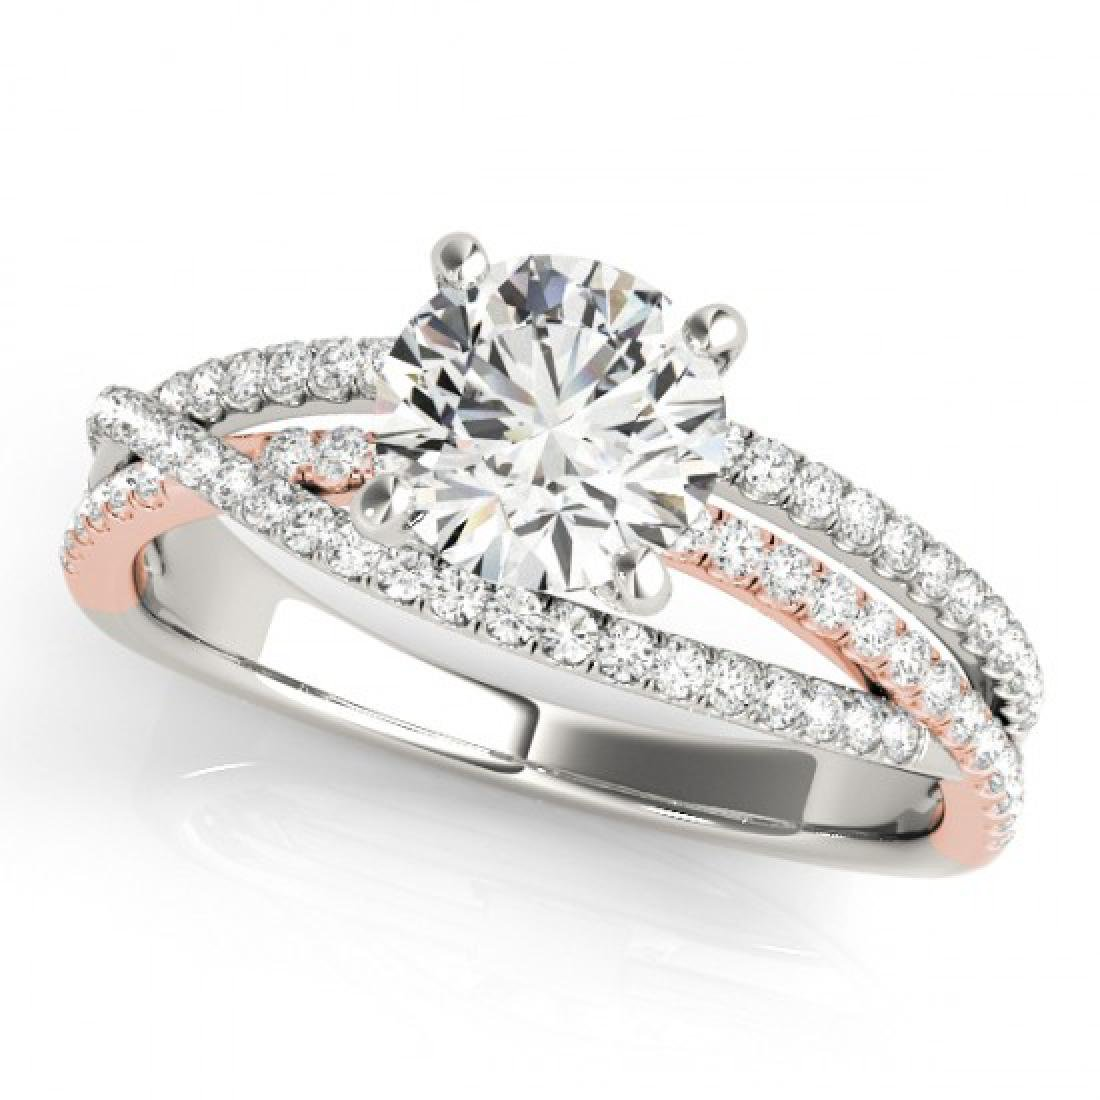 1.65 CTW Certified VS/SI Diamond Solitaire Ring 14K